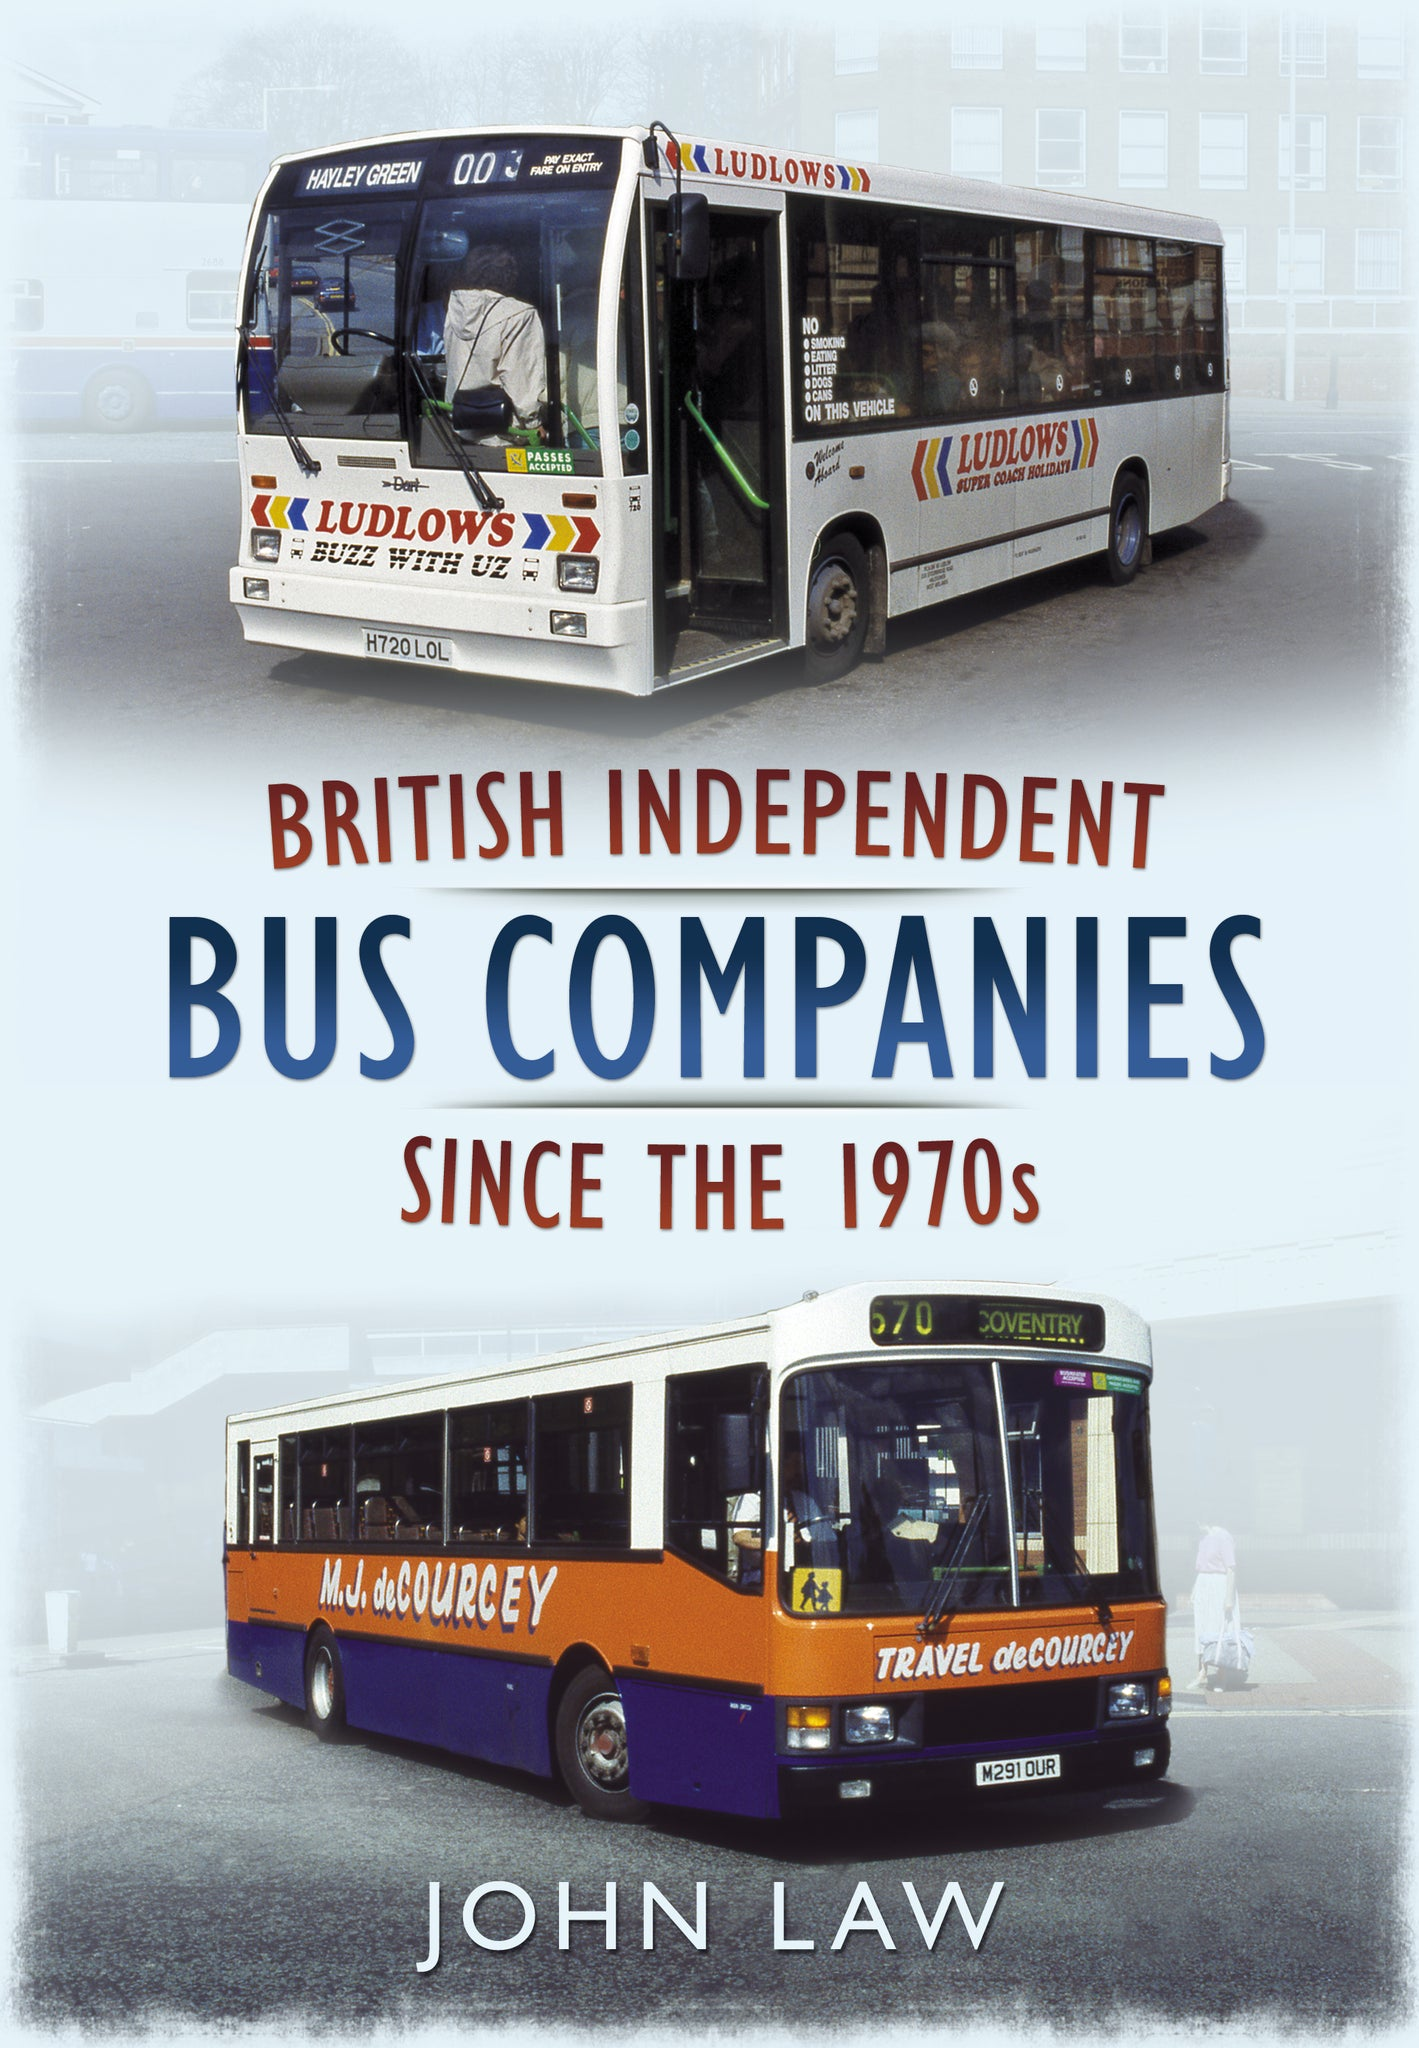 British Independent Bus Companies Since the 1970s - available now from Fonthill Media